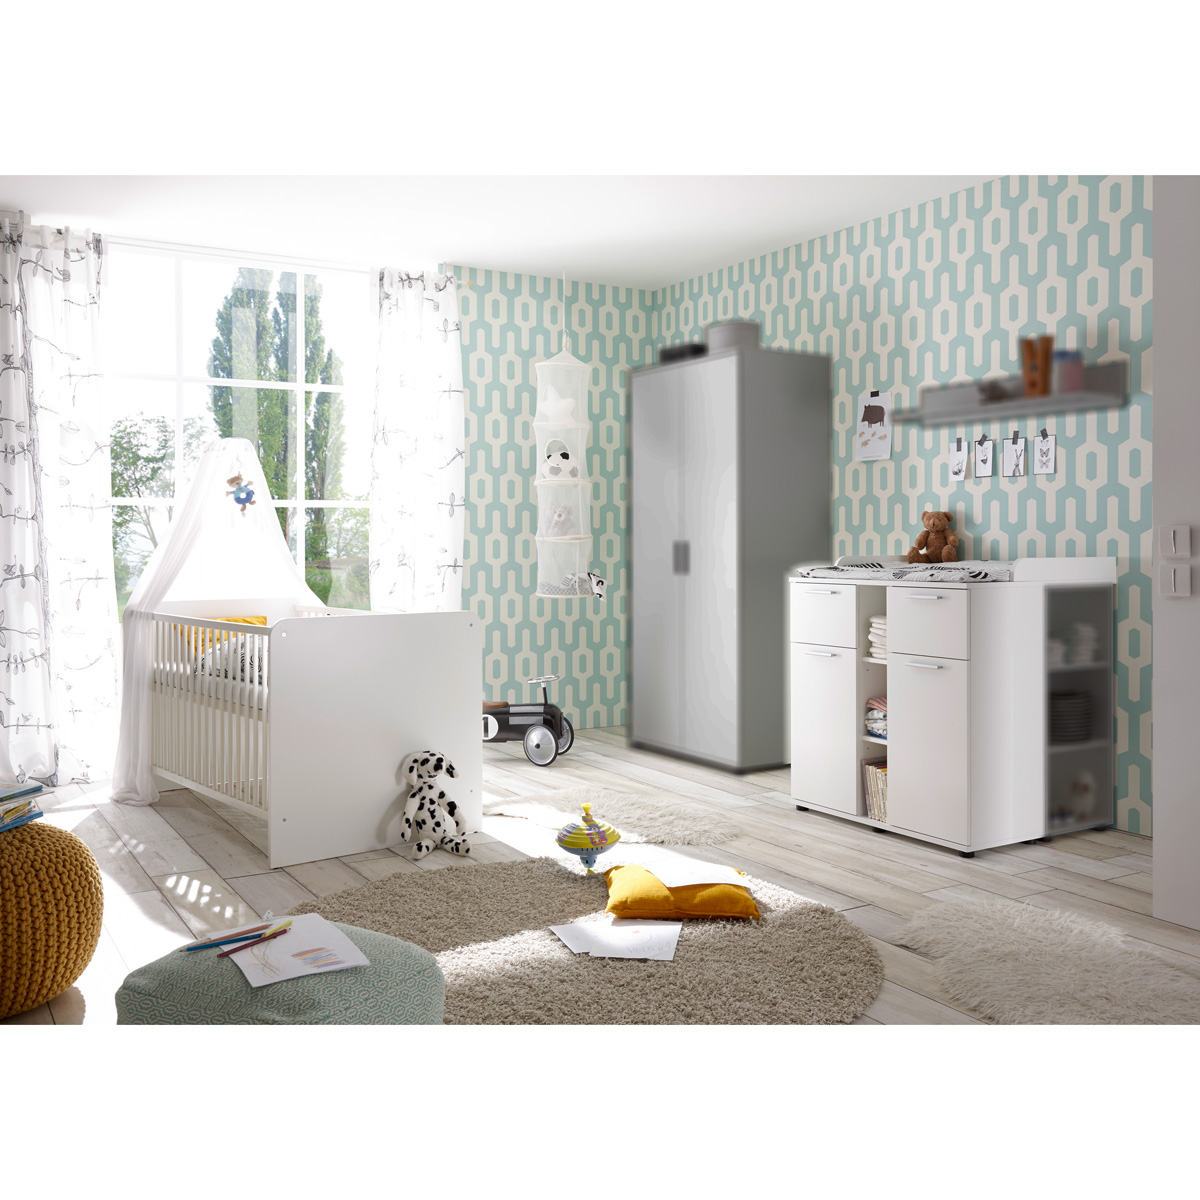 babyzimmer bibo kinderzimmer set schrank bett kommode regal in wei ebay. Black Bedroom Furniture Sets. Home Design Ideas